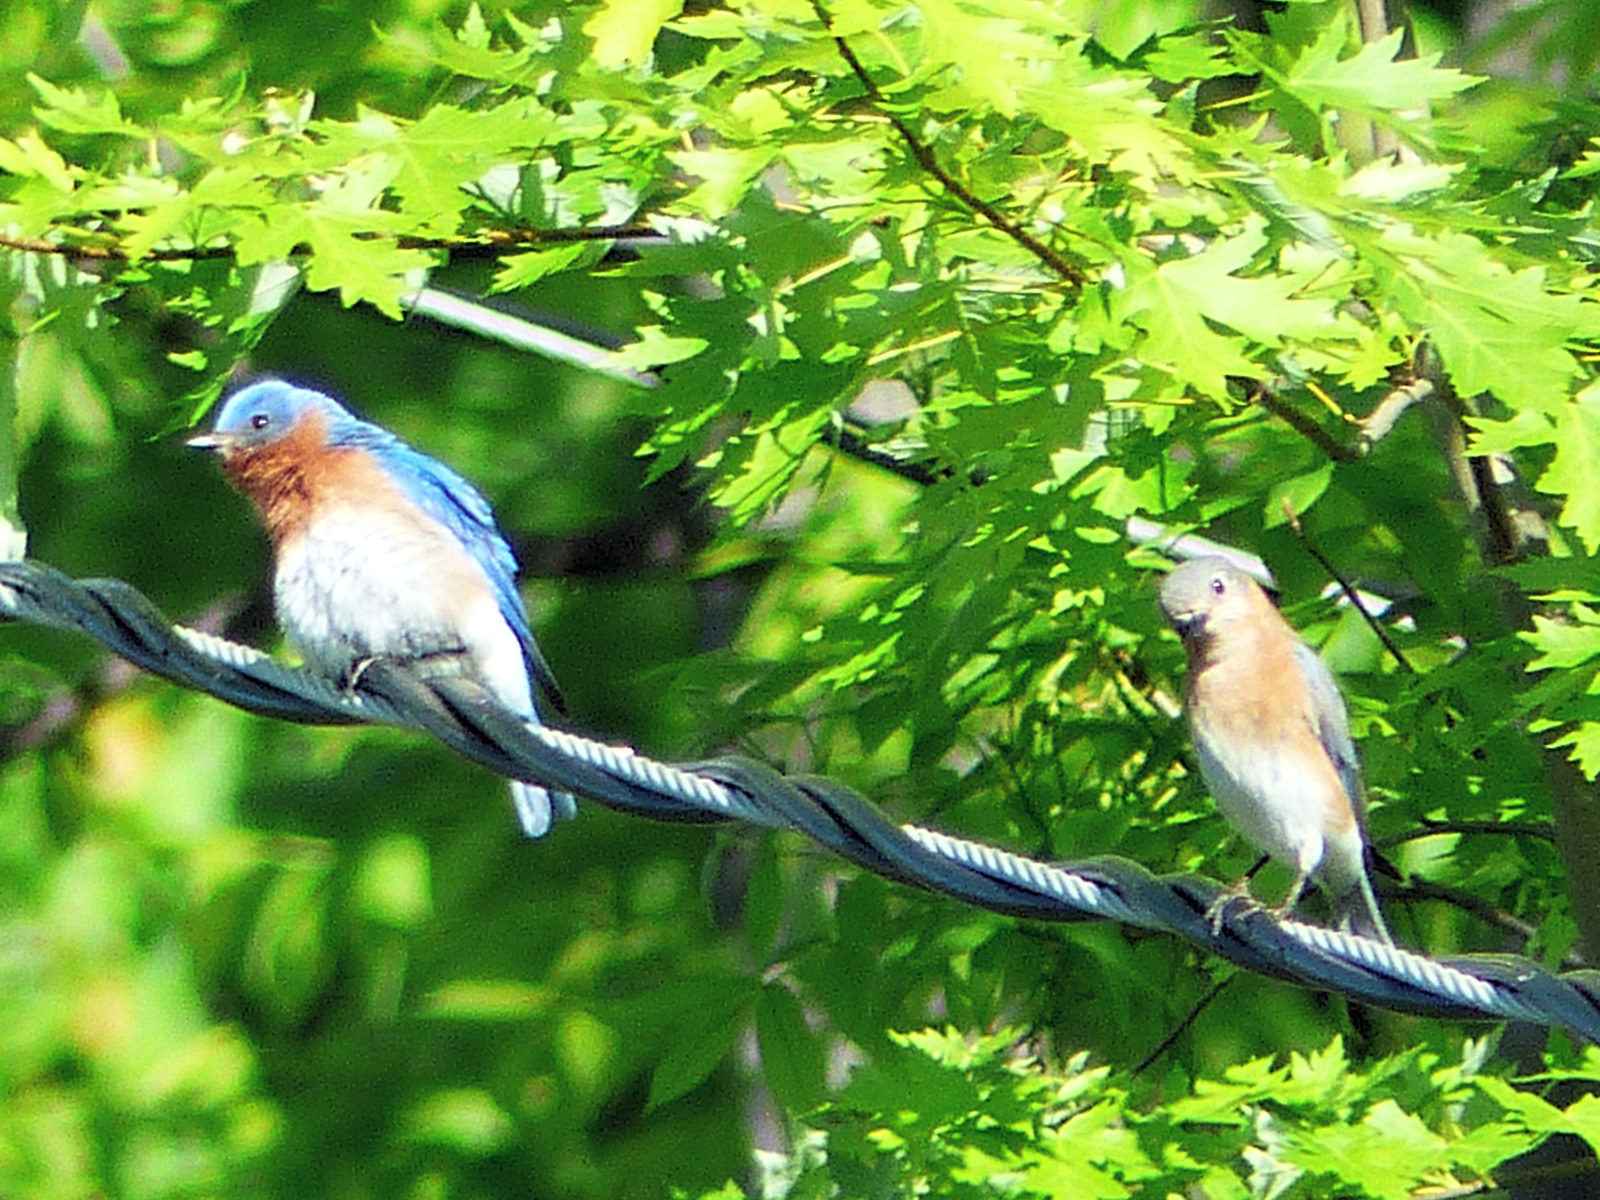 Parent and Young Bluebird